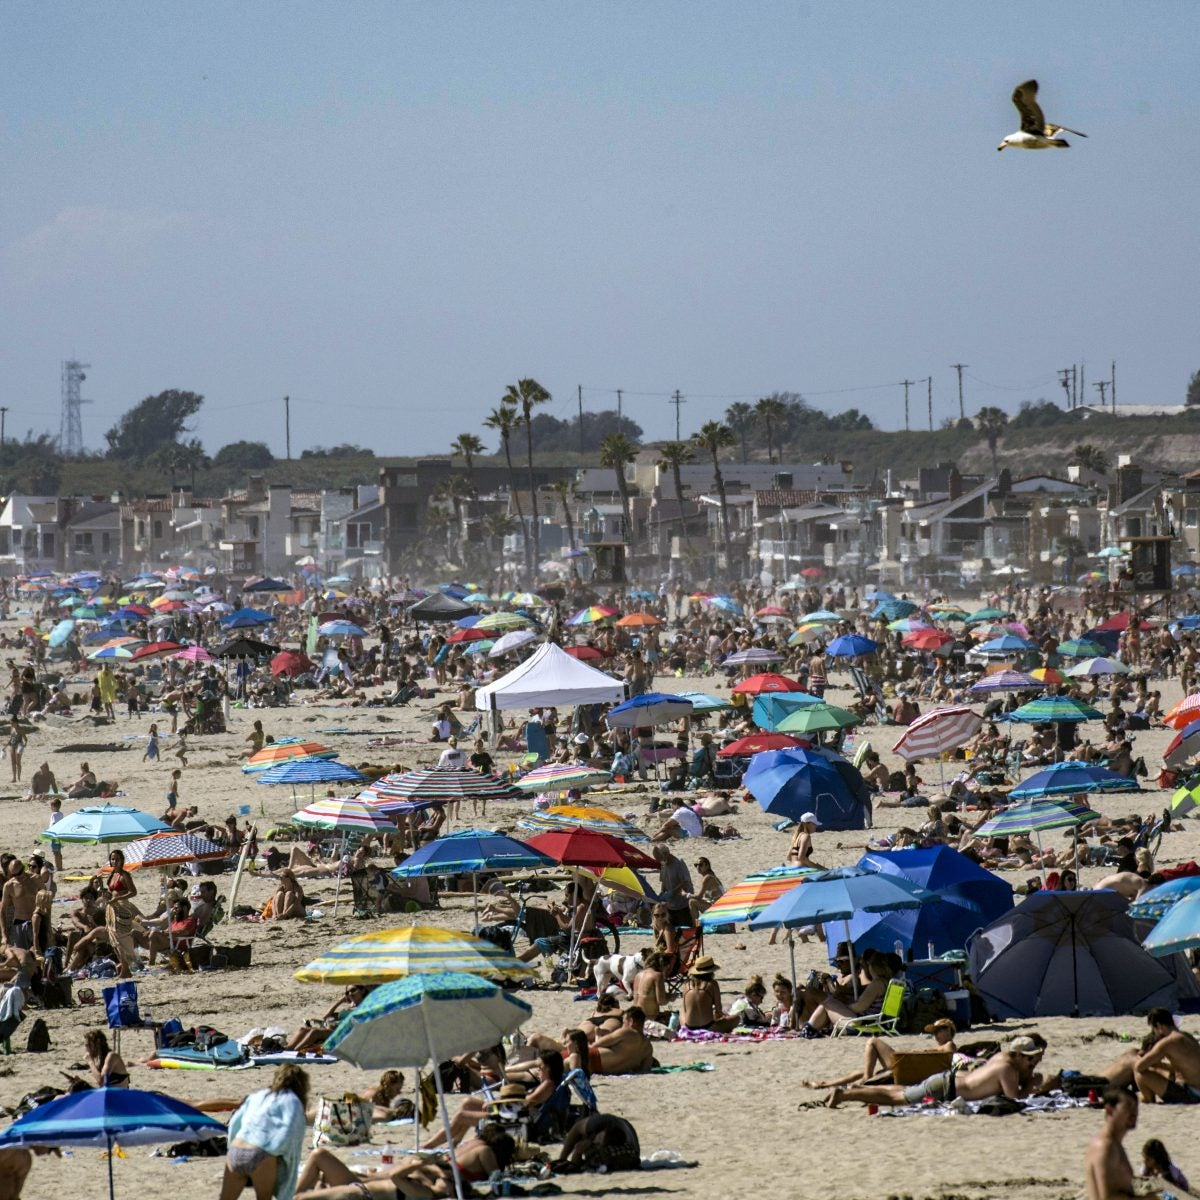 California Governor To Order Close Of All Beaches, All State Parks